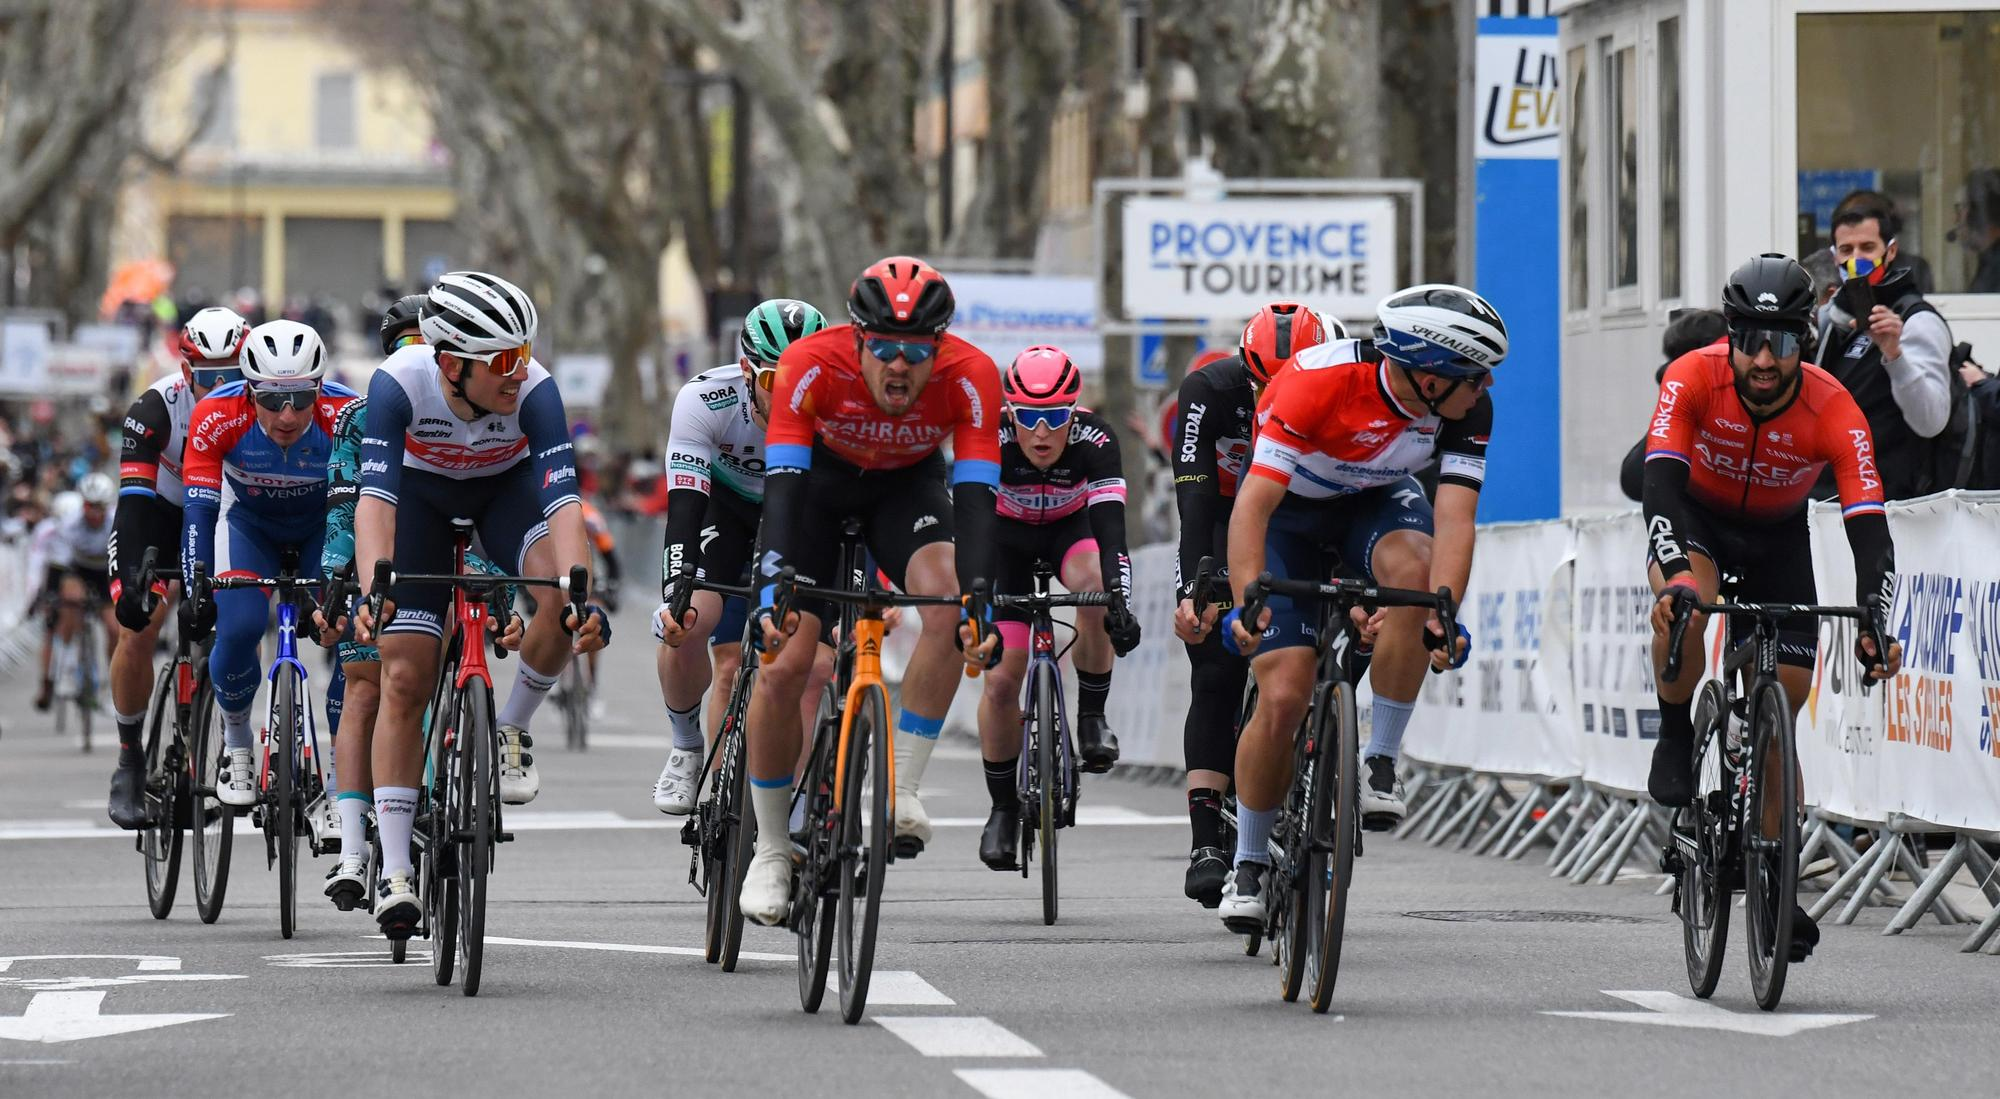 Tour de la Provence 2021 6th Edition 4th stage Avignon SalondeProvence 1632 km 14022021 Phil Bauhaus GER Bahrain Victorious Davide Ballerini ITA Deceuninck QuickStep Nacer Bouhanni FRA Team Arkea Samsic photo William Cannarella CVBettiniPhoto2021